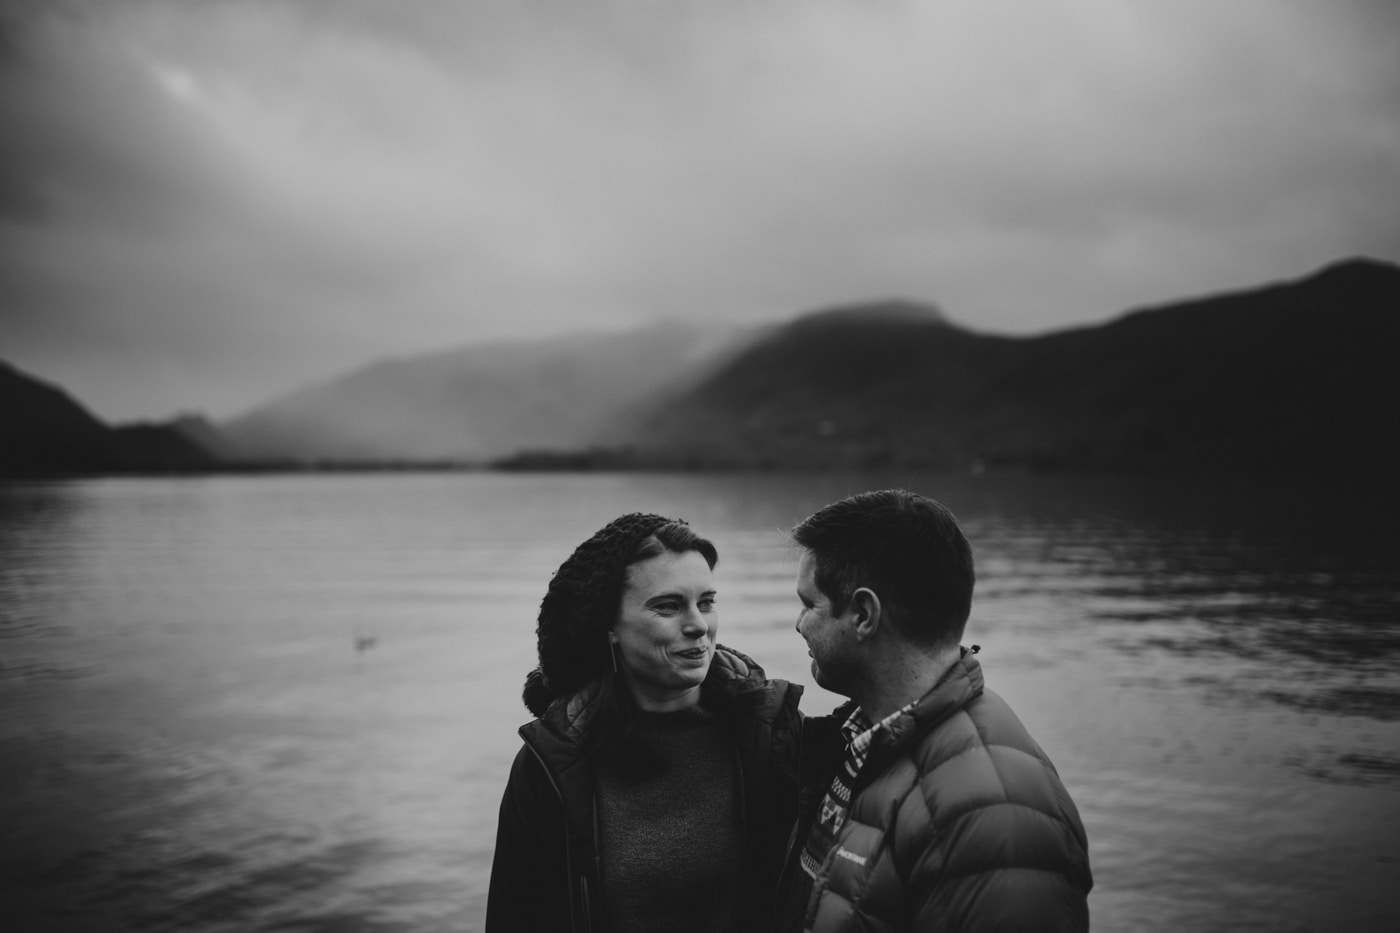 Man and woman in front of water and mountains Lake District and Cumbria Based Wedding Photographer Joshua Wyborn Photographic